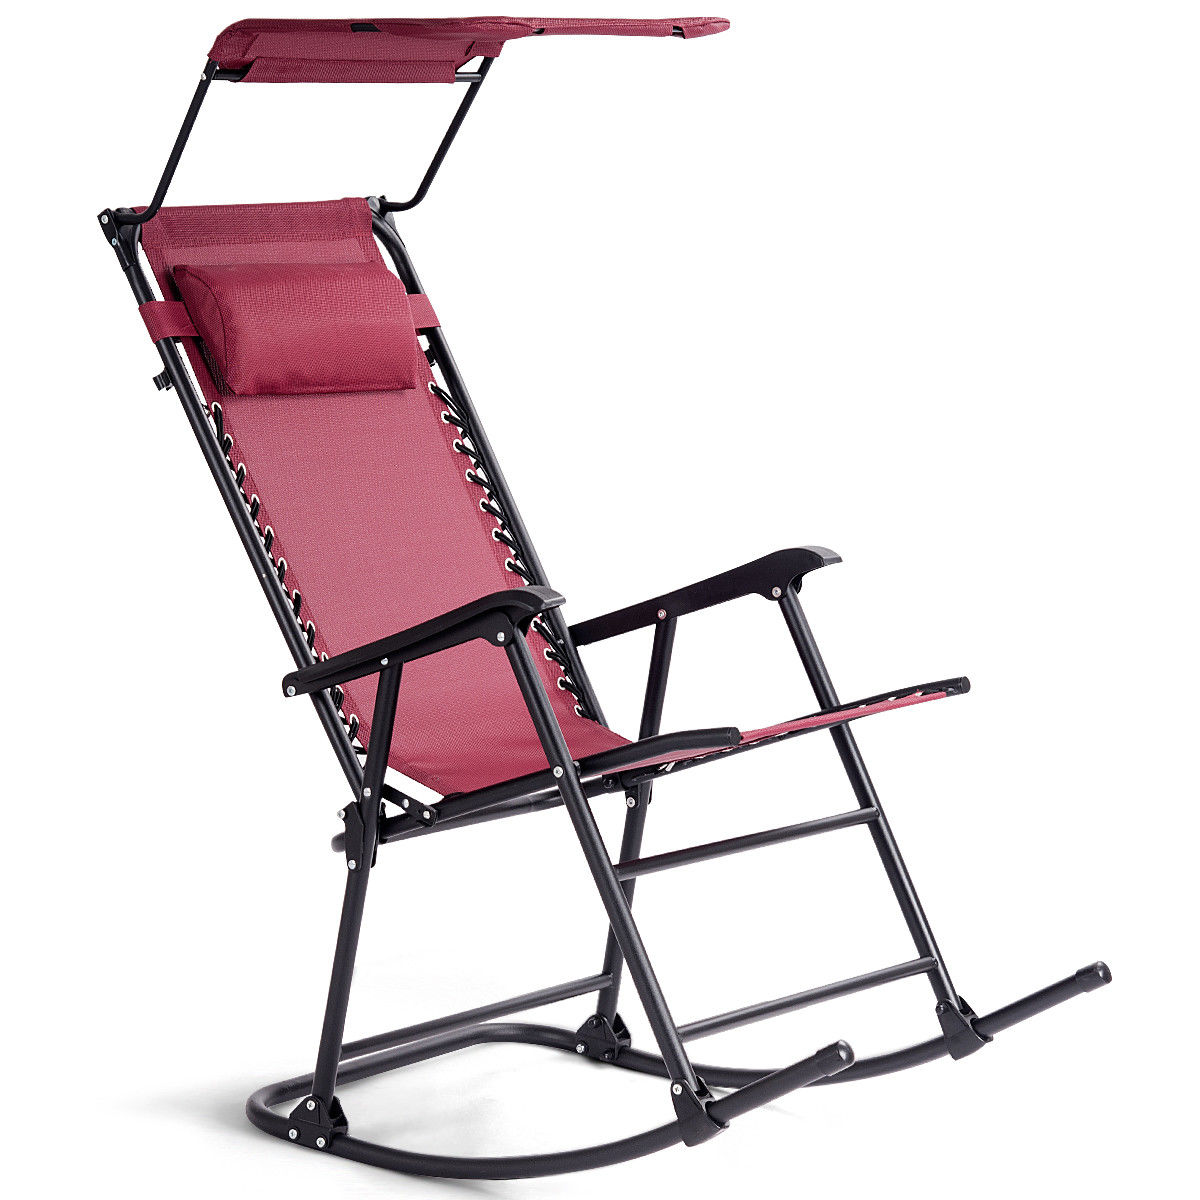 Soft Folding Chairs Ghp Red Fabric Folding Rocking Porch Chair Seat With